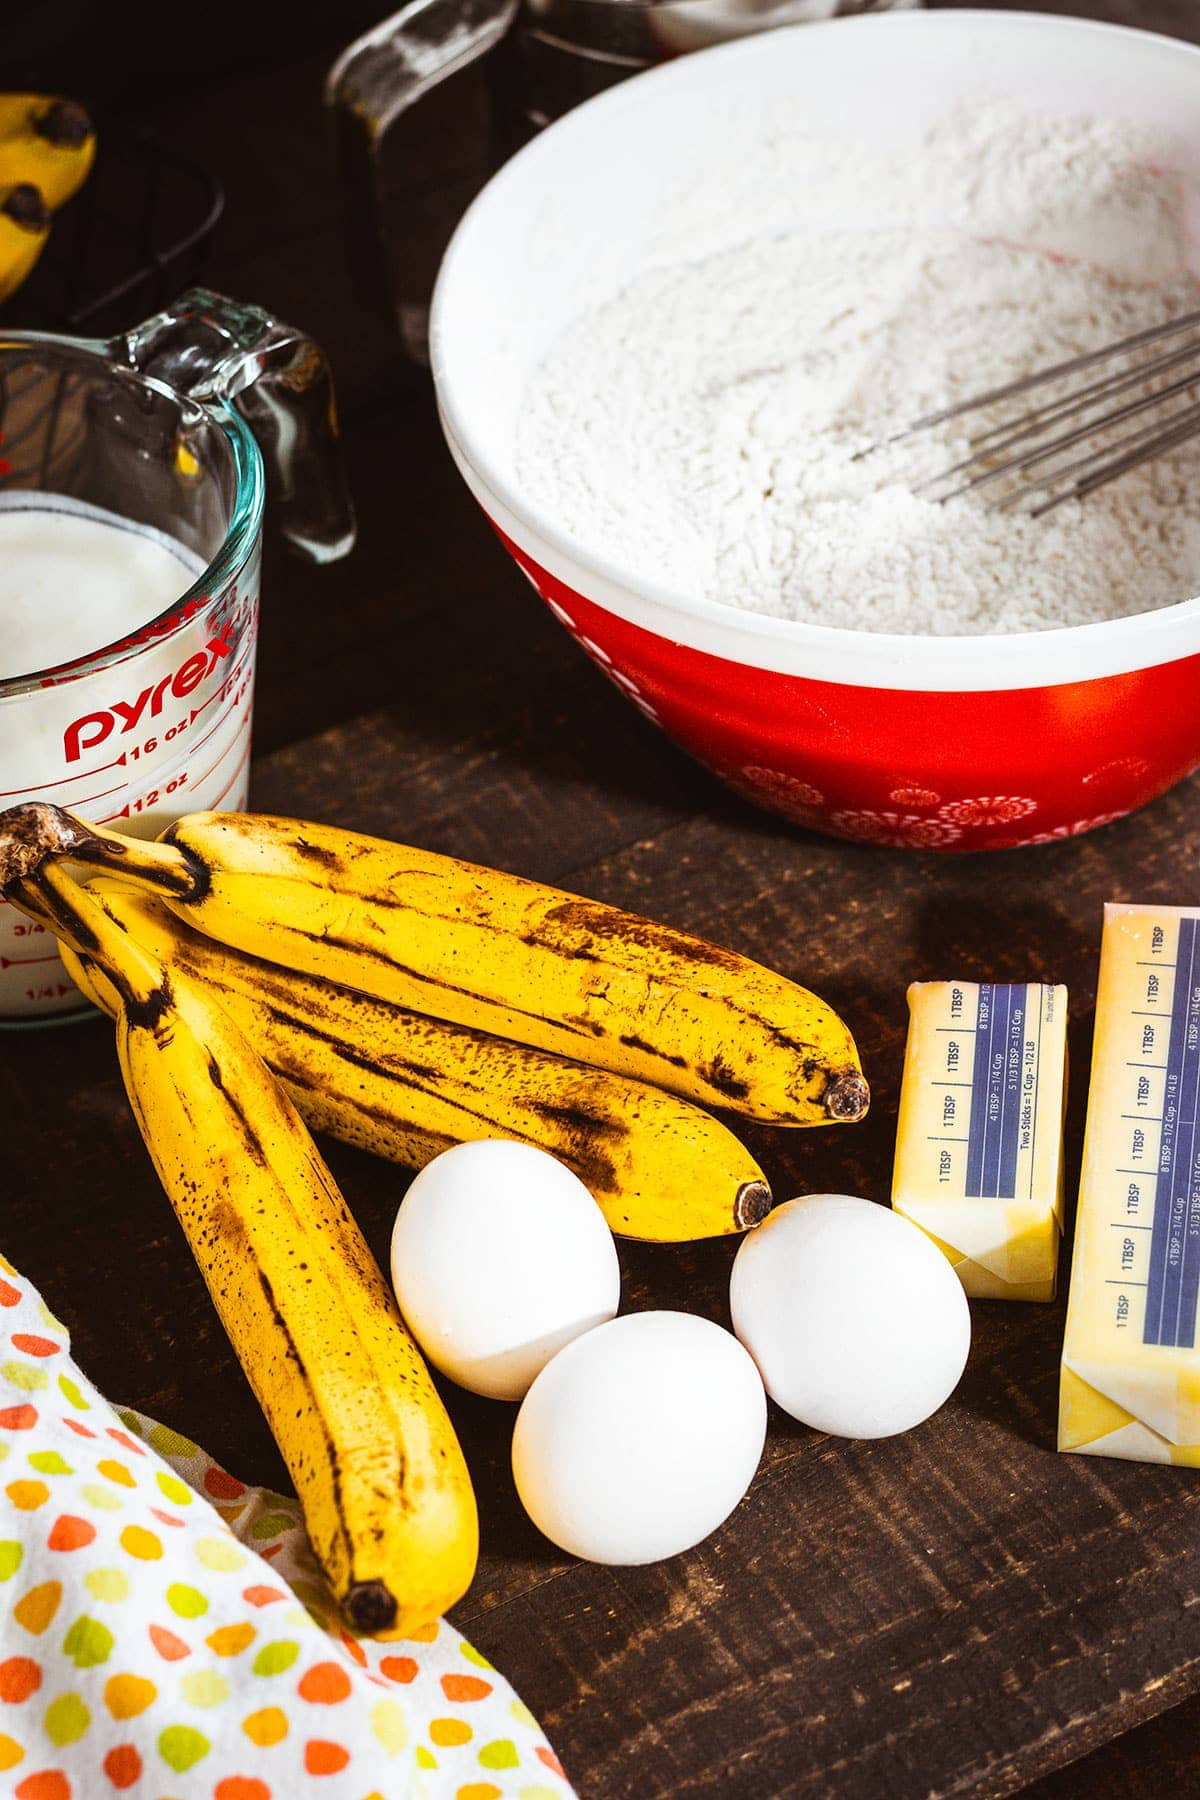 Ingredients for Banana Cake. Ripe bananas, eggs, butter, flour mixture in a red bowl and a measuring cup of buttermilk.